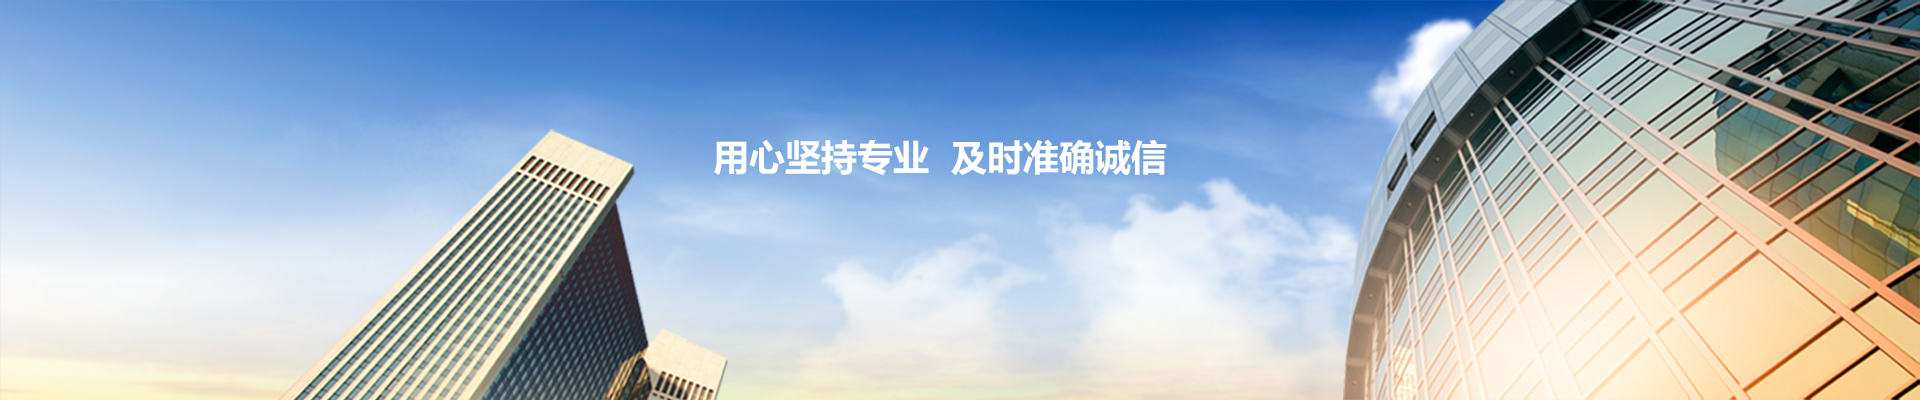 http://www.czliangrui.com/data/upload/202012/20201210090712_466.jpg